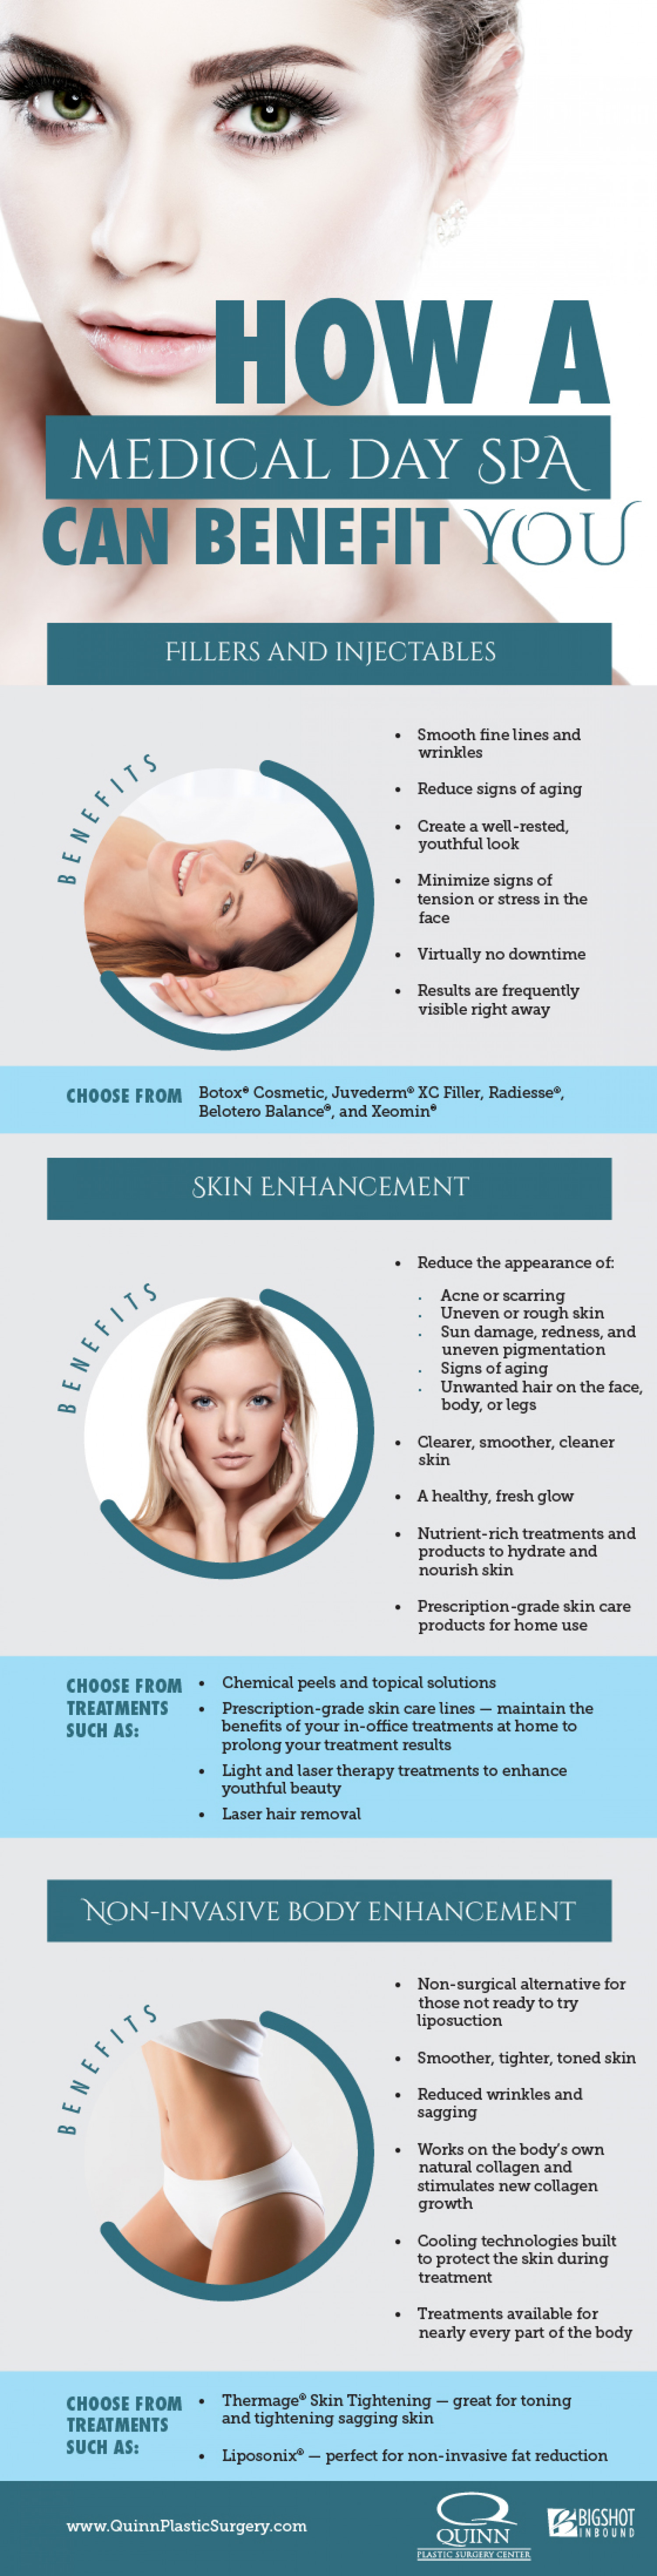 Medical Day Spa Benefits Infographic